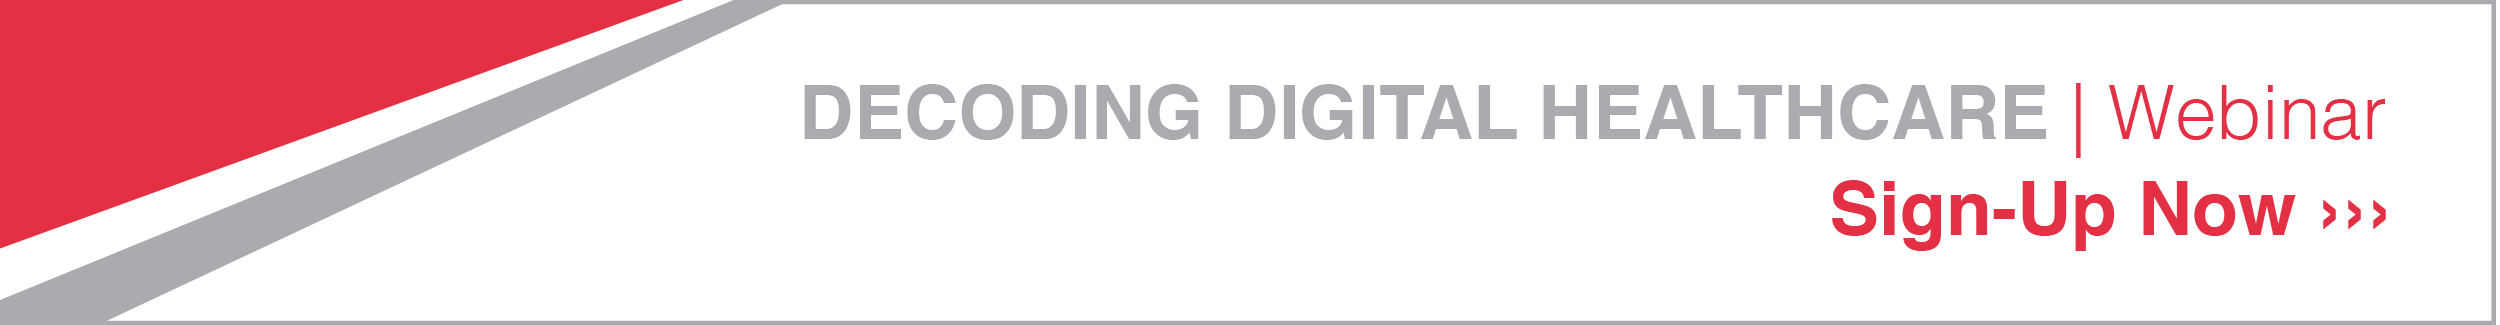 Digital Transformation Webinar Sign-up